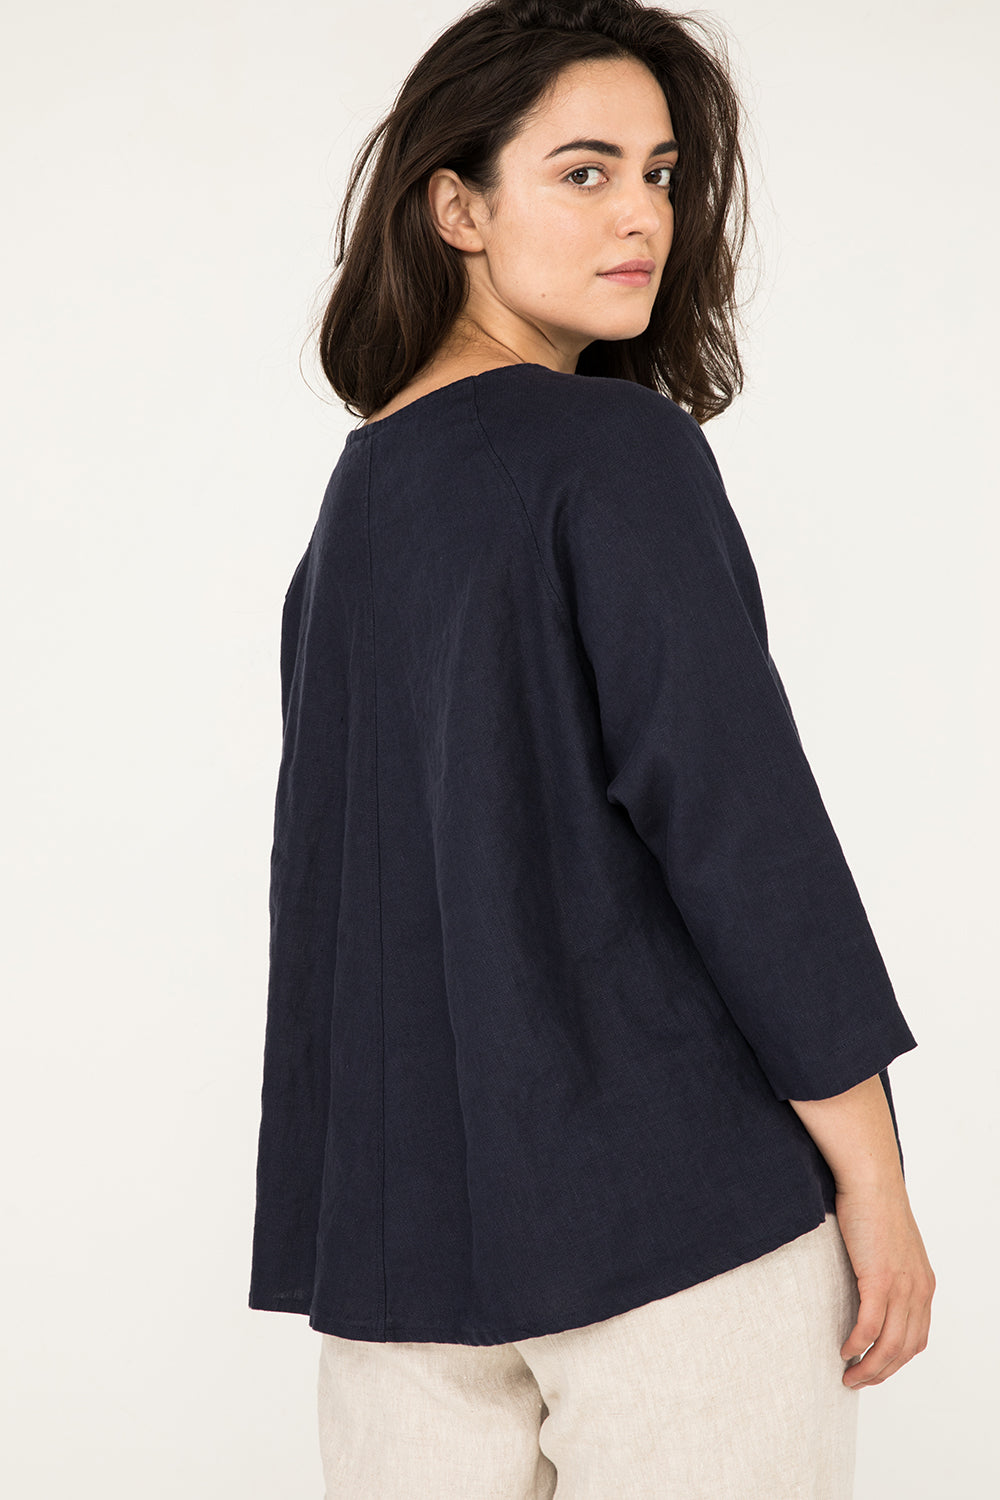 Artist Smock in Midweight Linen Navy - Natalie-OS